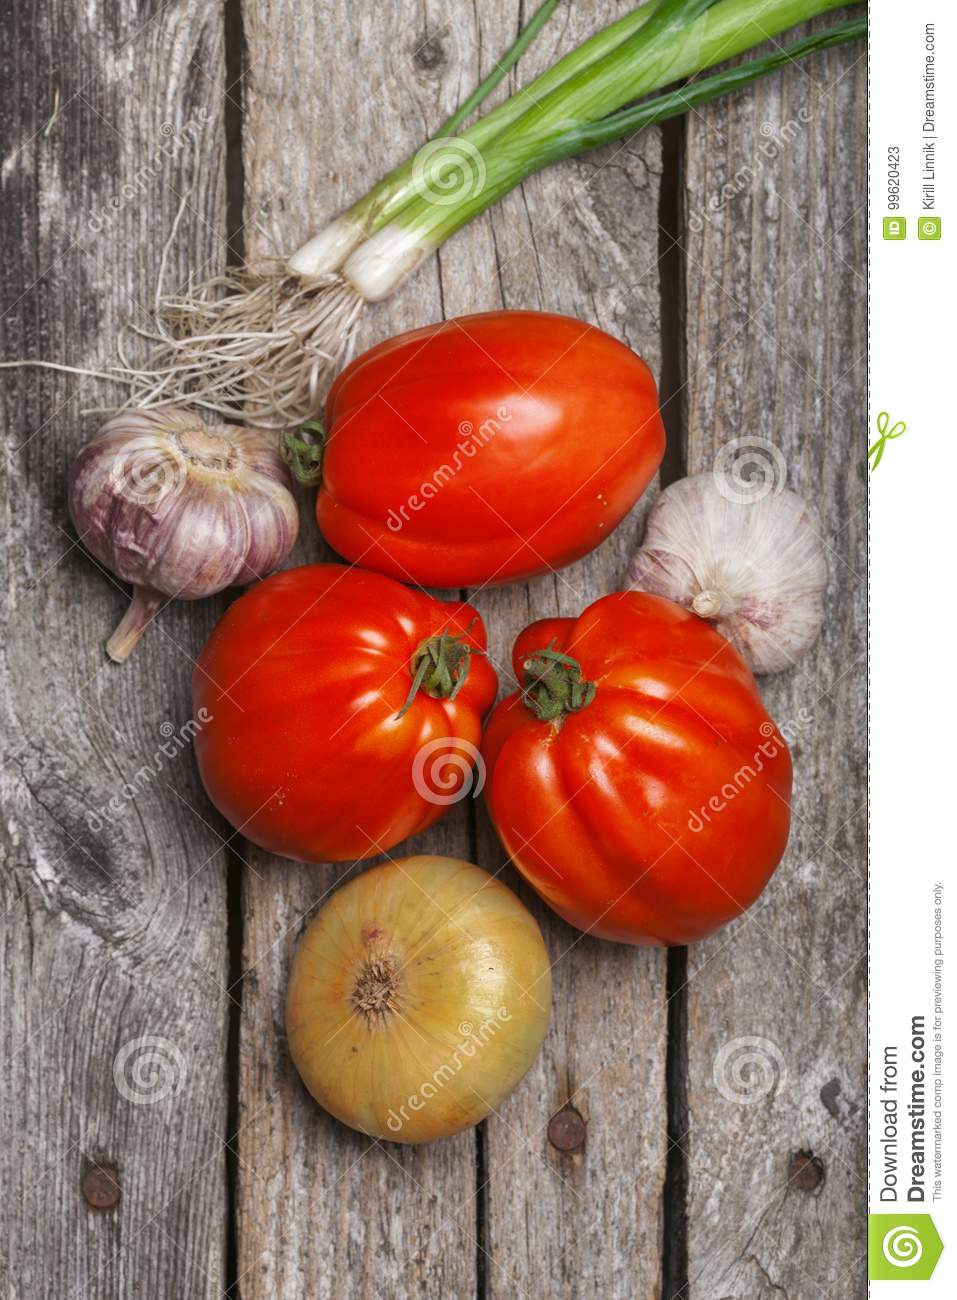 Download Tomatoes, Onion And Garlic On The Table Stock Image - Image of board, plant: 99620423